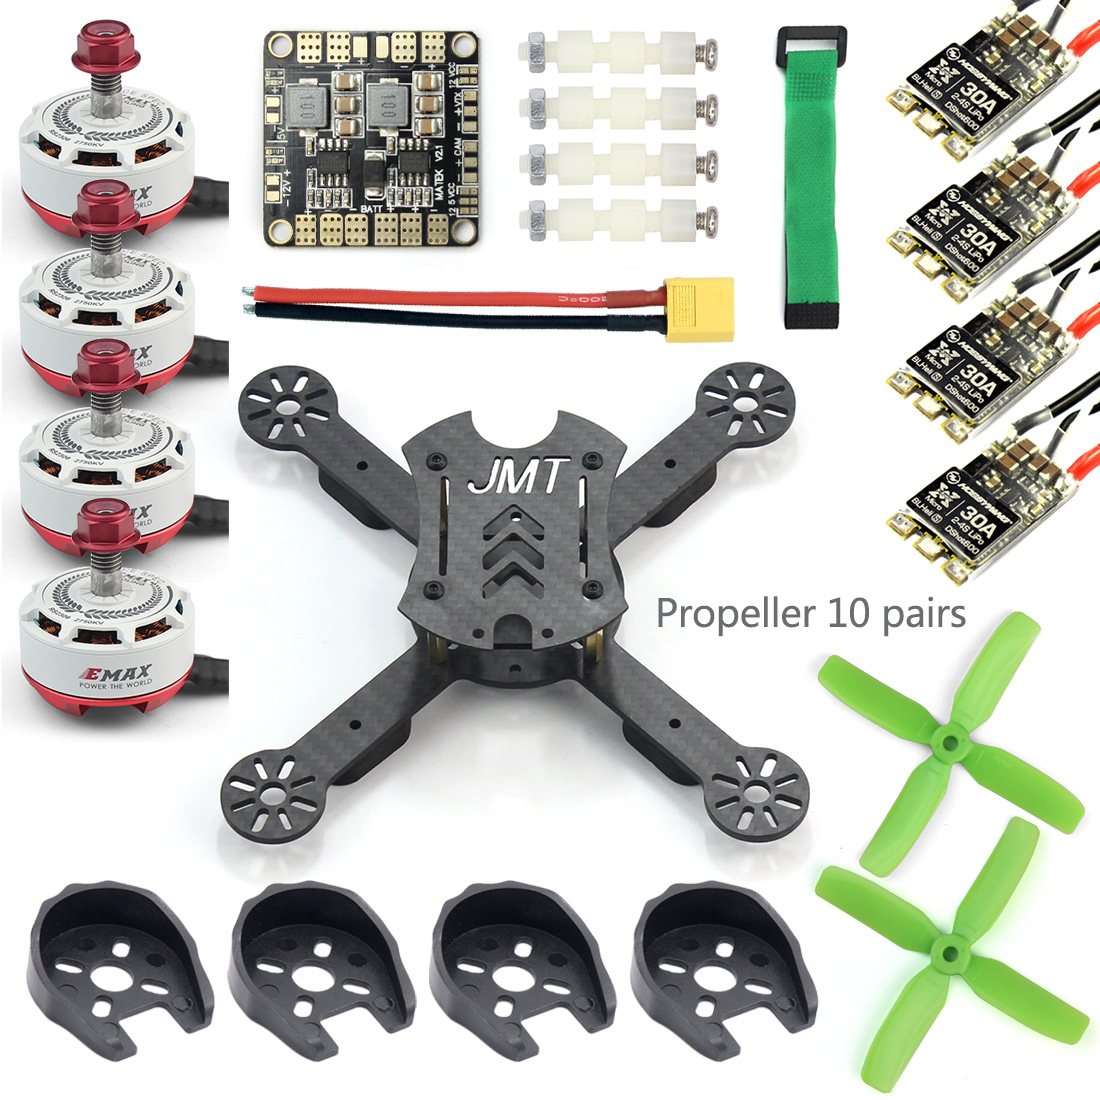 JMT X180 DIY Racing Drone Quadcopter Combo Frame w/ EMAX RS2306 2750KV 2400KV Brushless Motor + BLHeli-s 30A / 4in1 20A 12A ESC fpv mini drone diy zmr250 h250 quadcopter frame kit with mt1806 2280kv motor emax simon k blheli 12a esc cc3d fight control